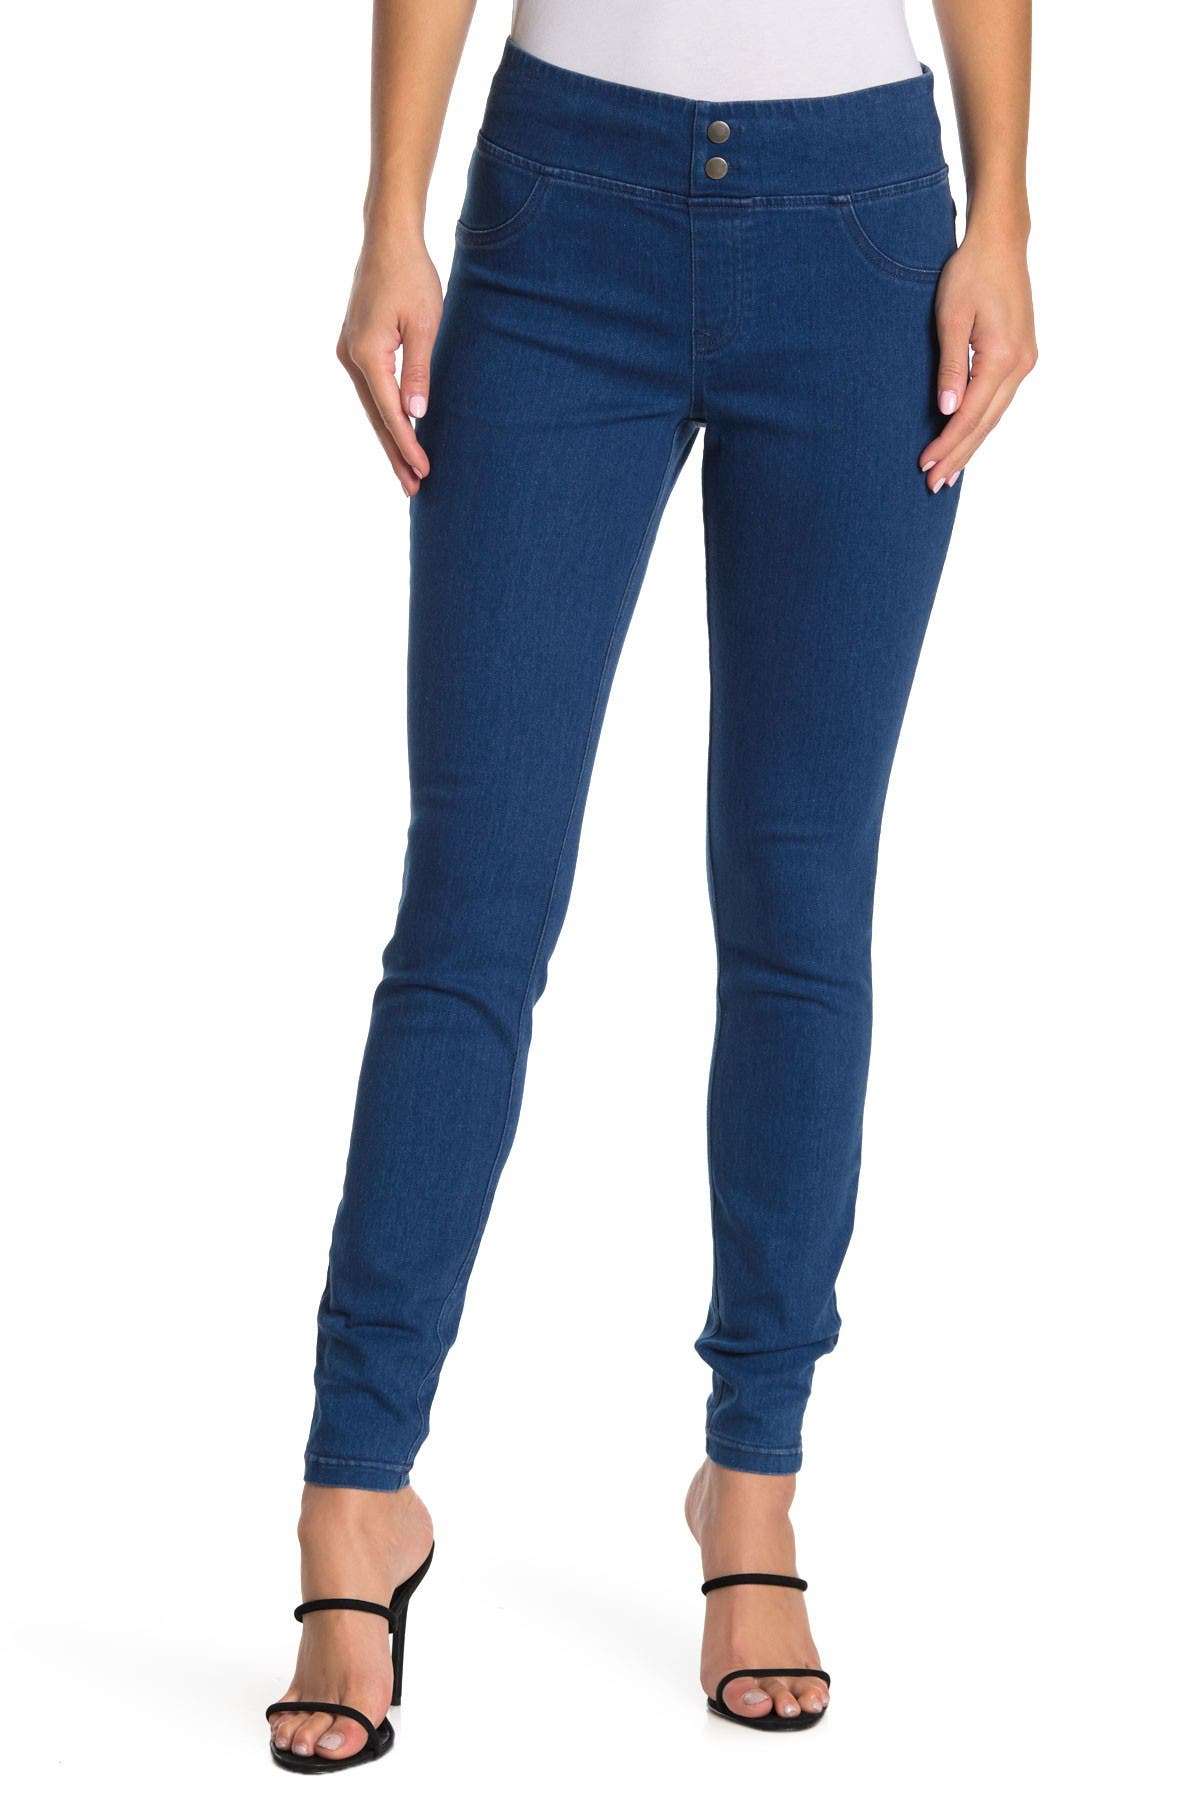 Image of HUE Classic Smooth Leggings